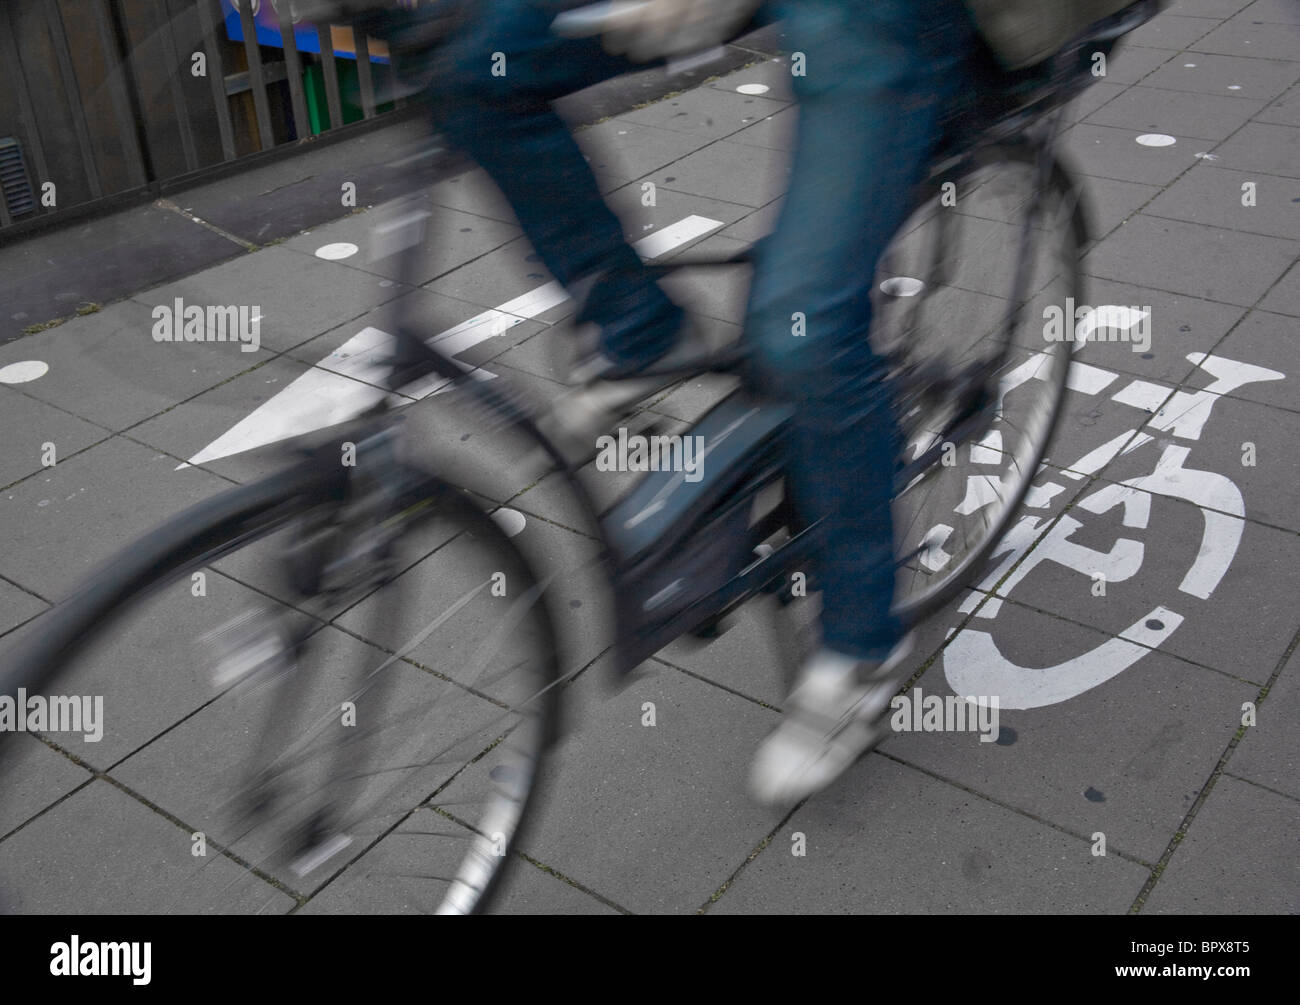 Speedy cyclist commuting on an urban cycleway. - Stock Image